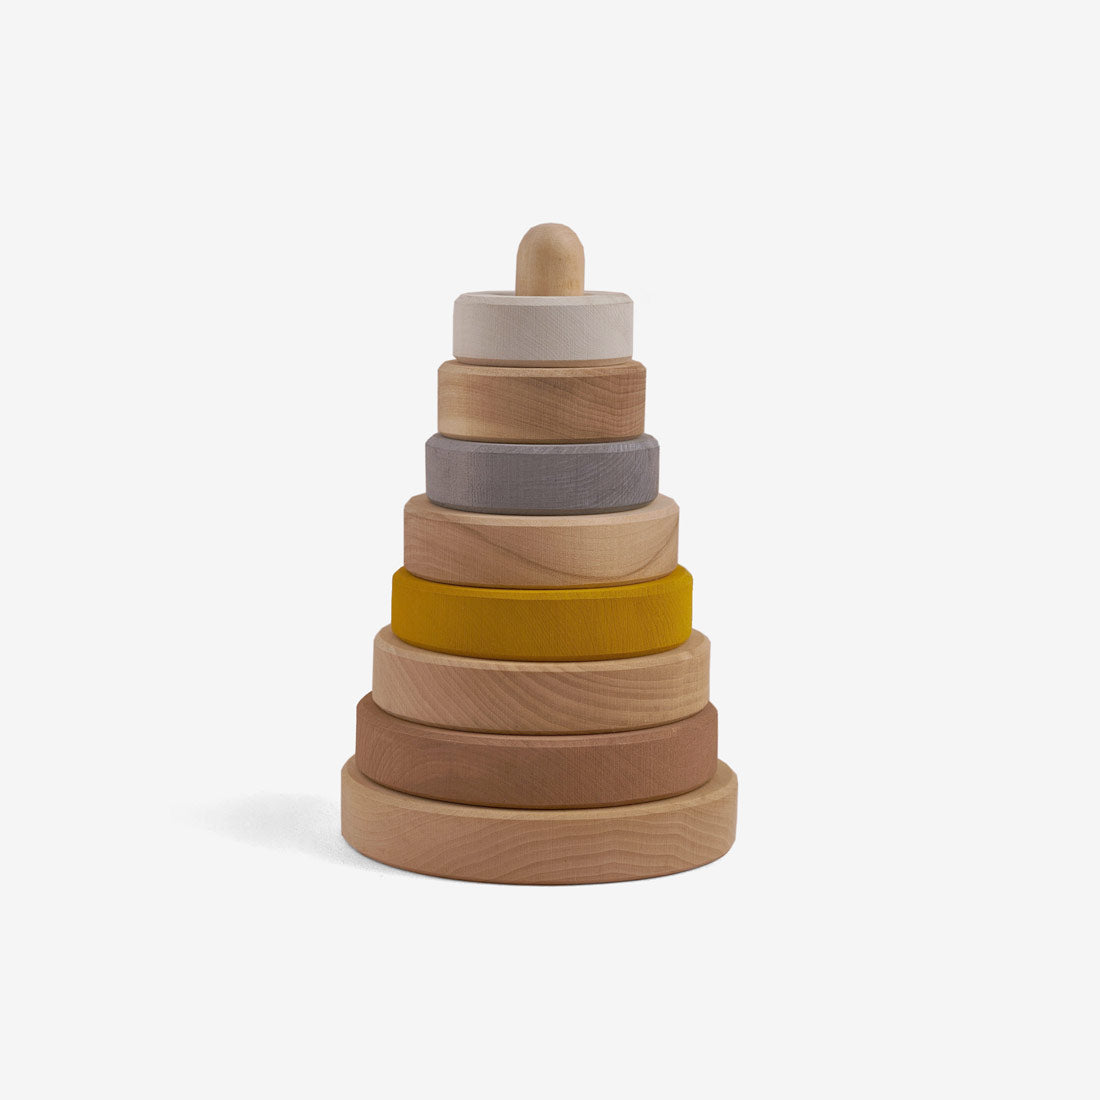 Hardwood Stacking Tower - Desert